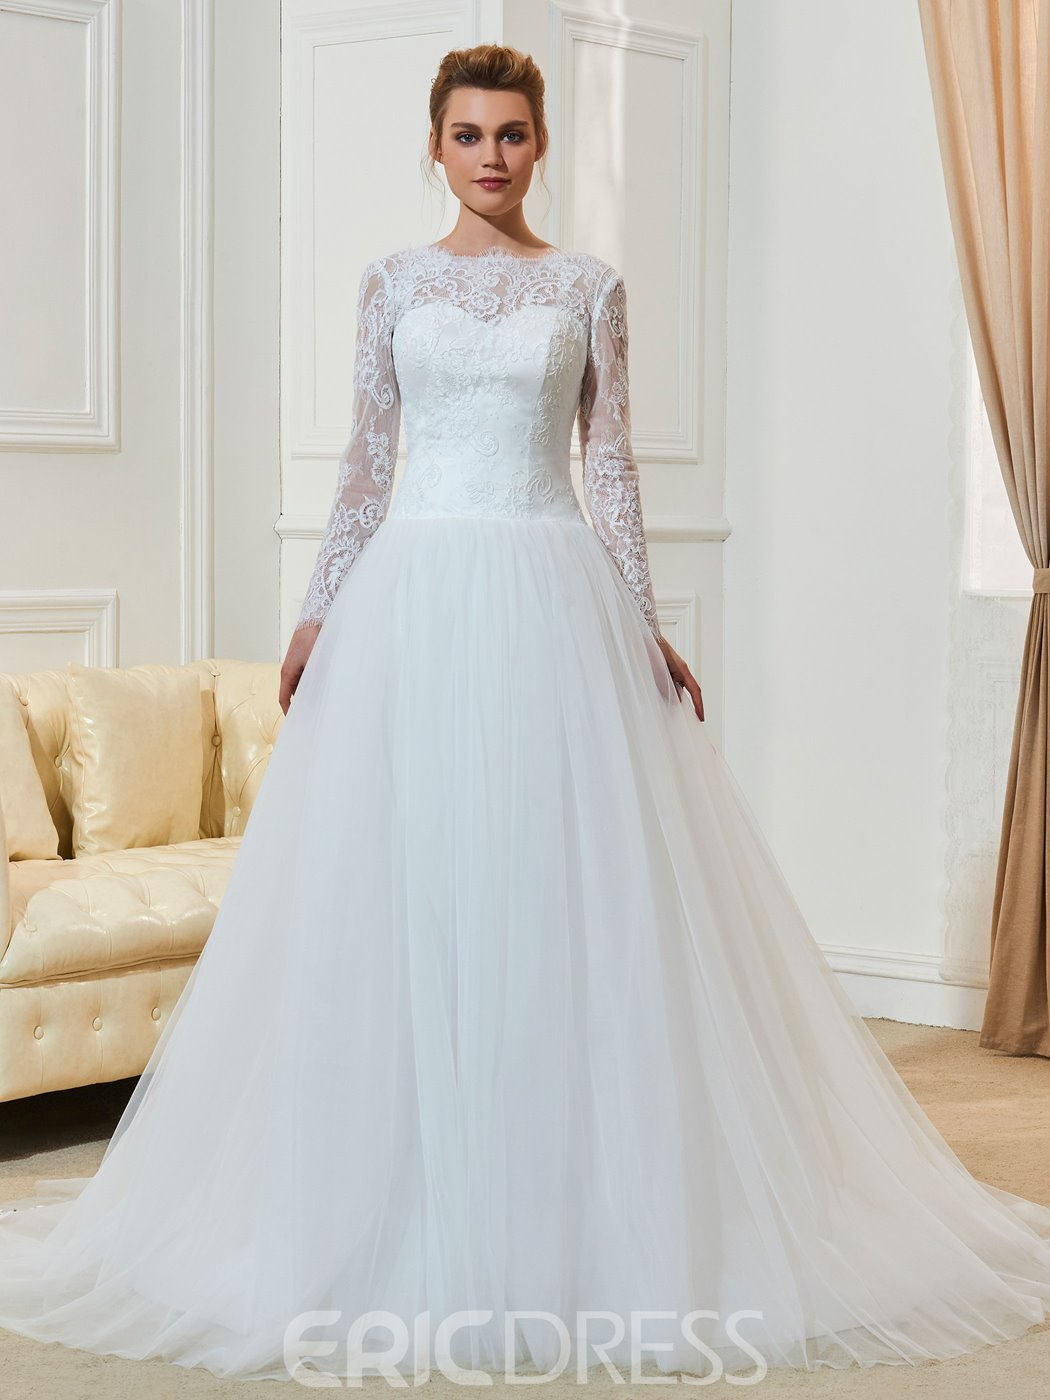 Ericdress A Line Long Sleeves Jewel Neckline Beaded Wedding Dress